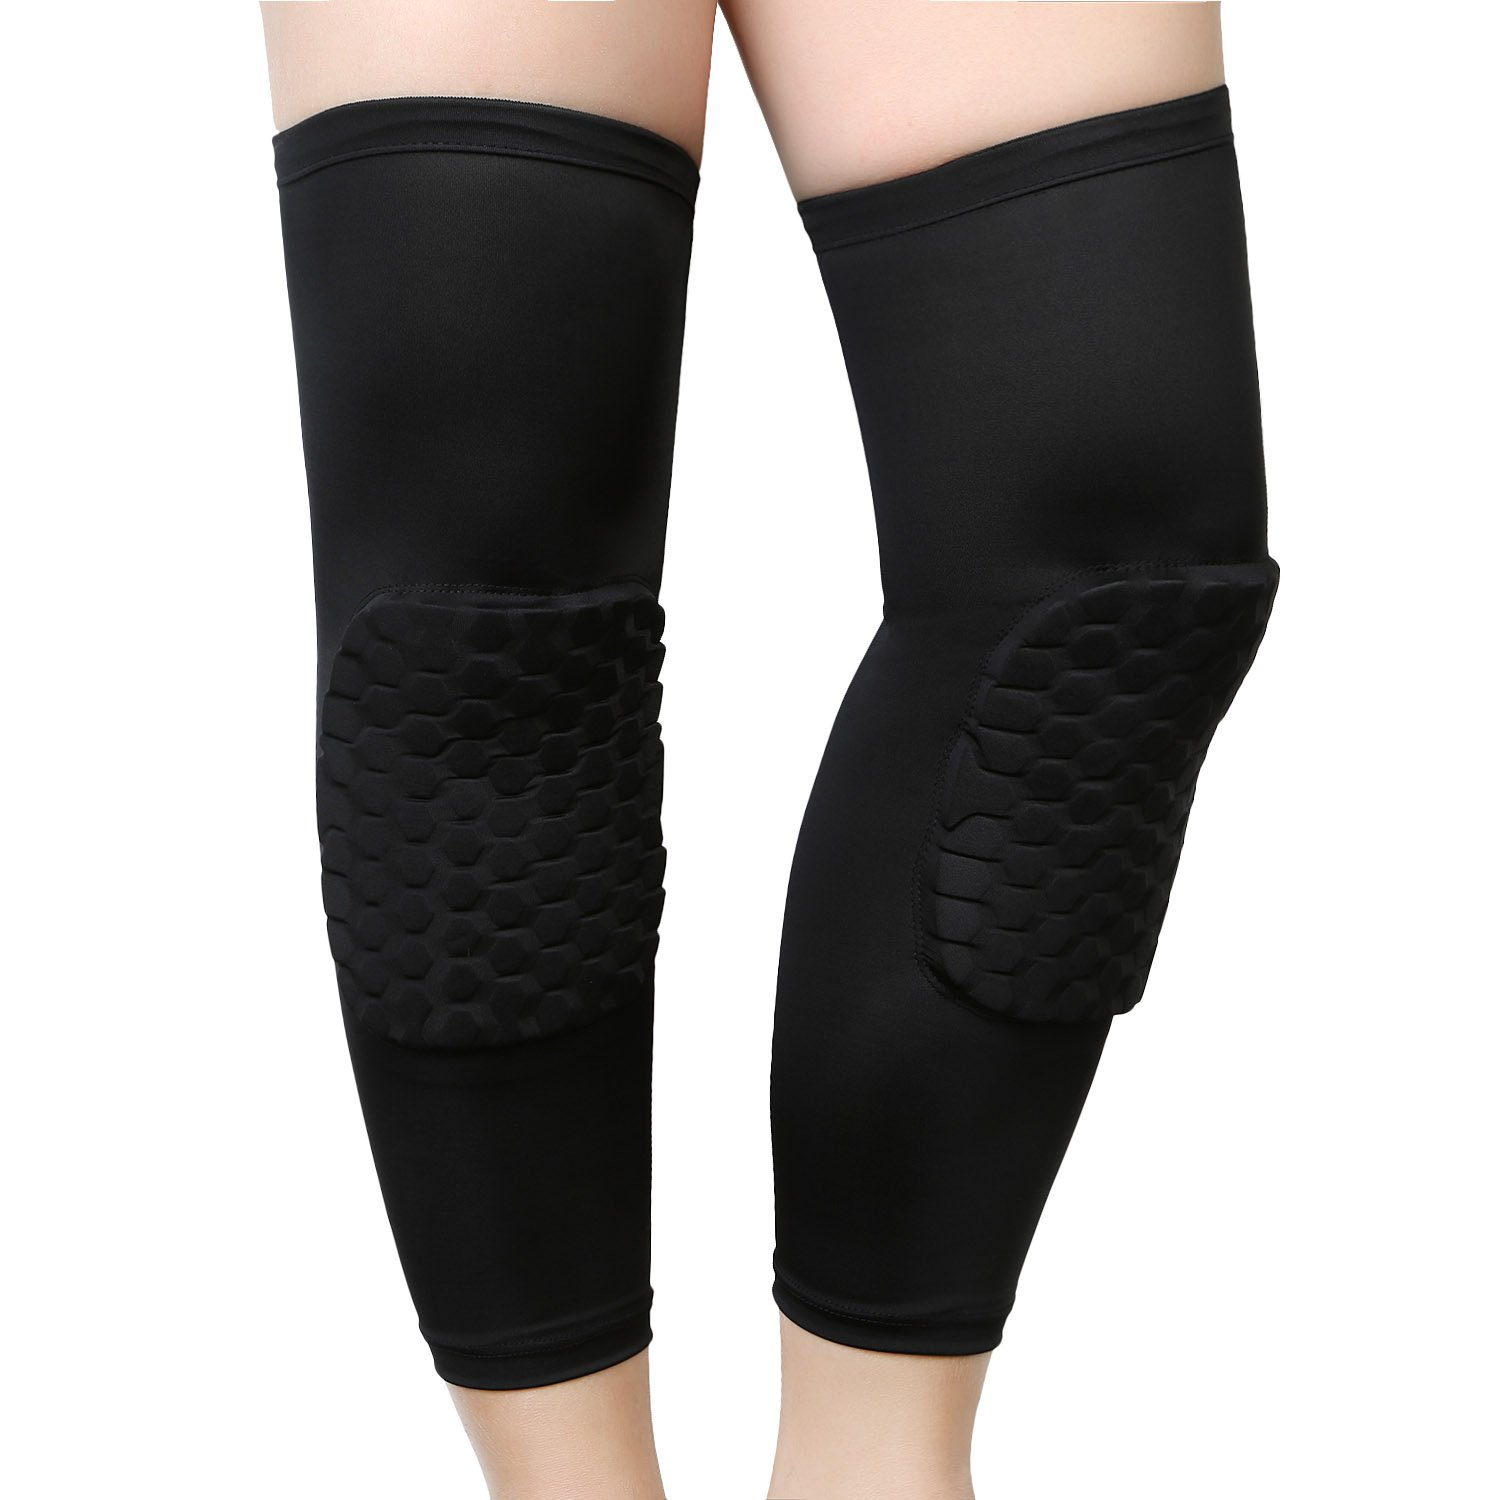 MeOkey Hex Padded Knee Pads Compression Leg Sleeve Black (One Pair)